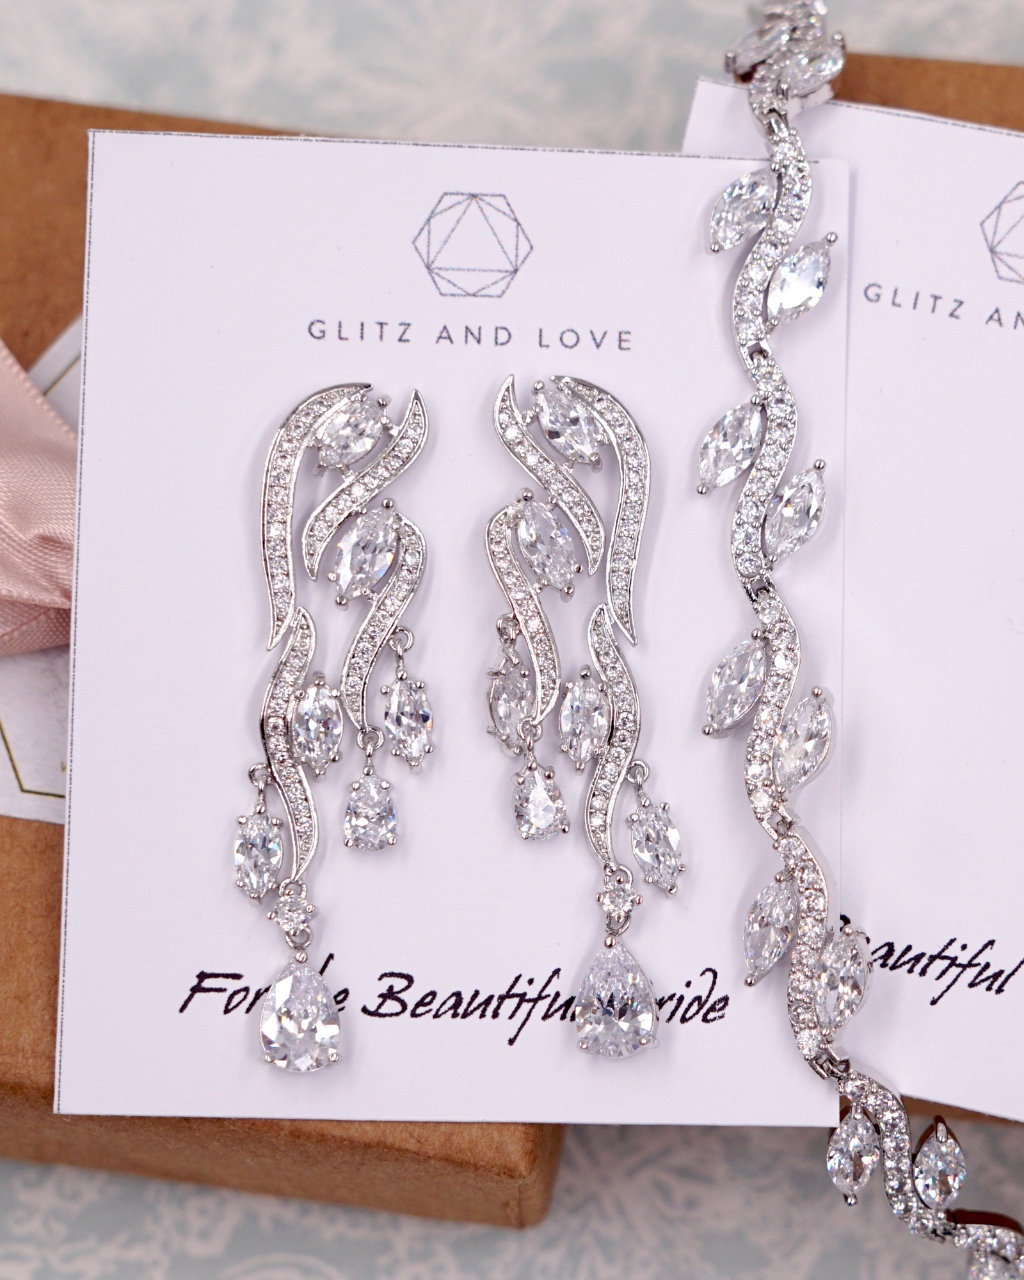 Silver Leaf Chandelier Earrings and Bracelet, Cubic zirconia, wedding jewelry set, brides, bridesmaids, bridal shower gifts, fancy